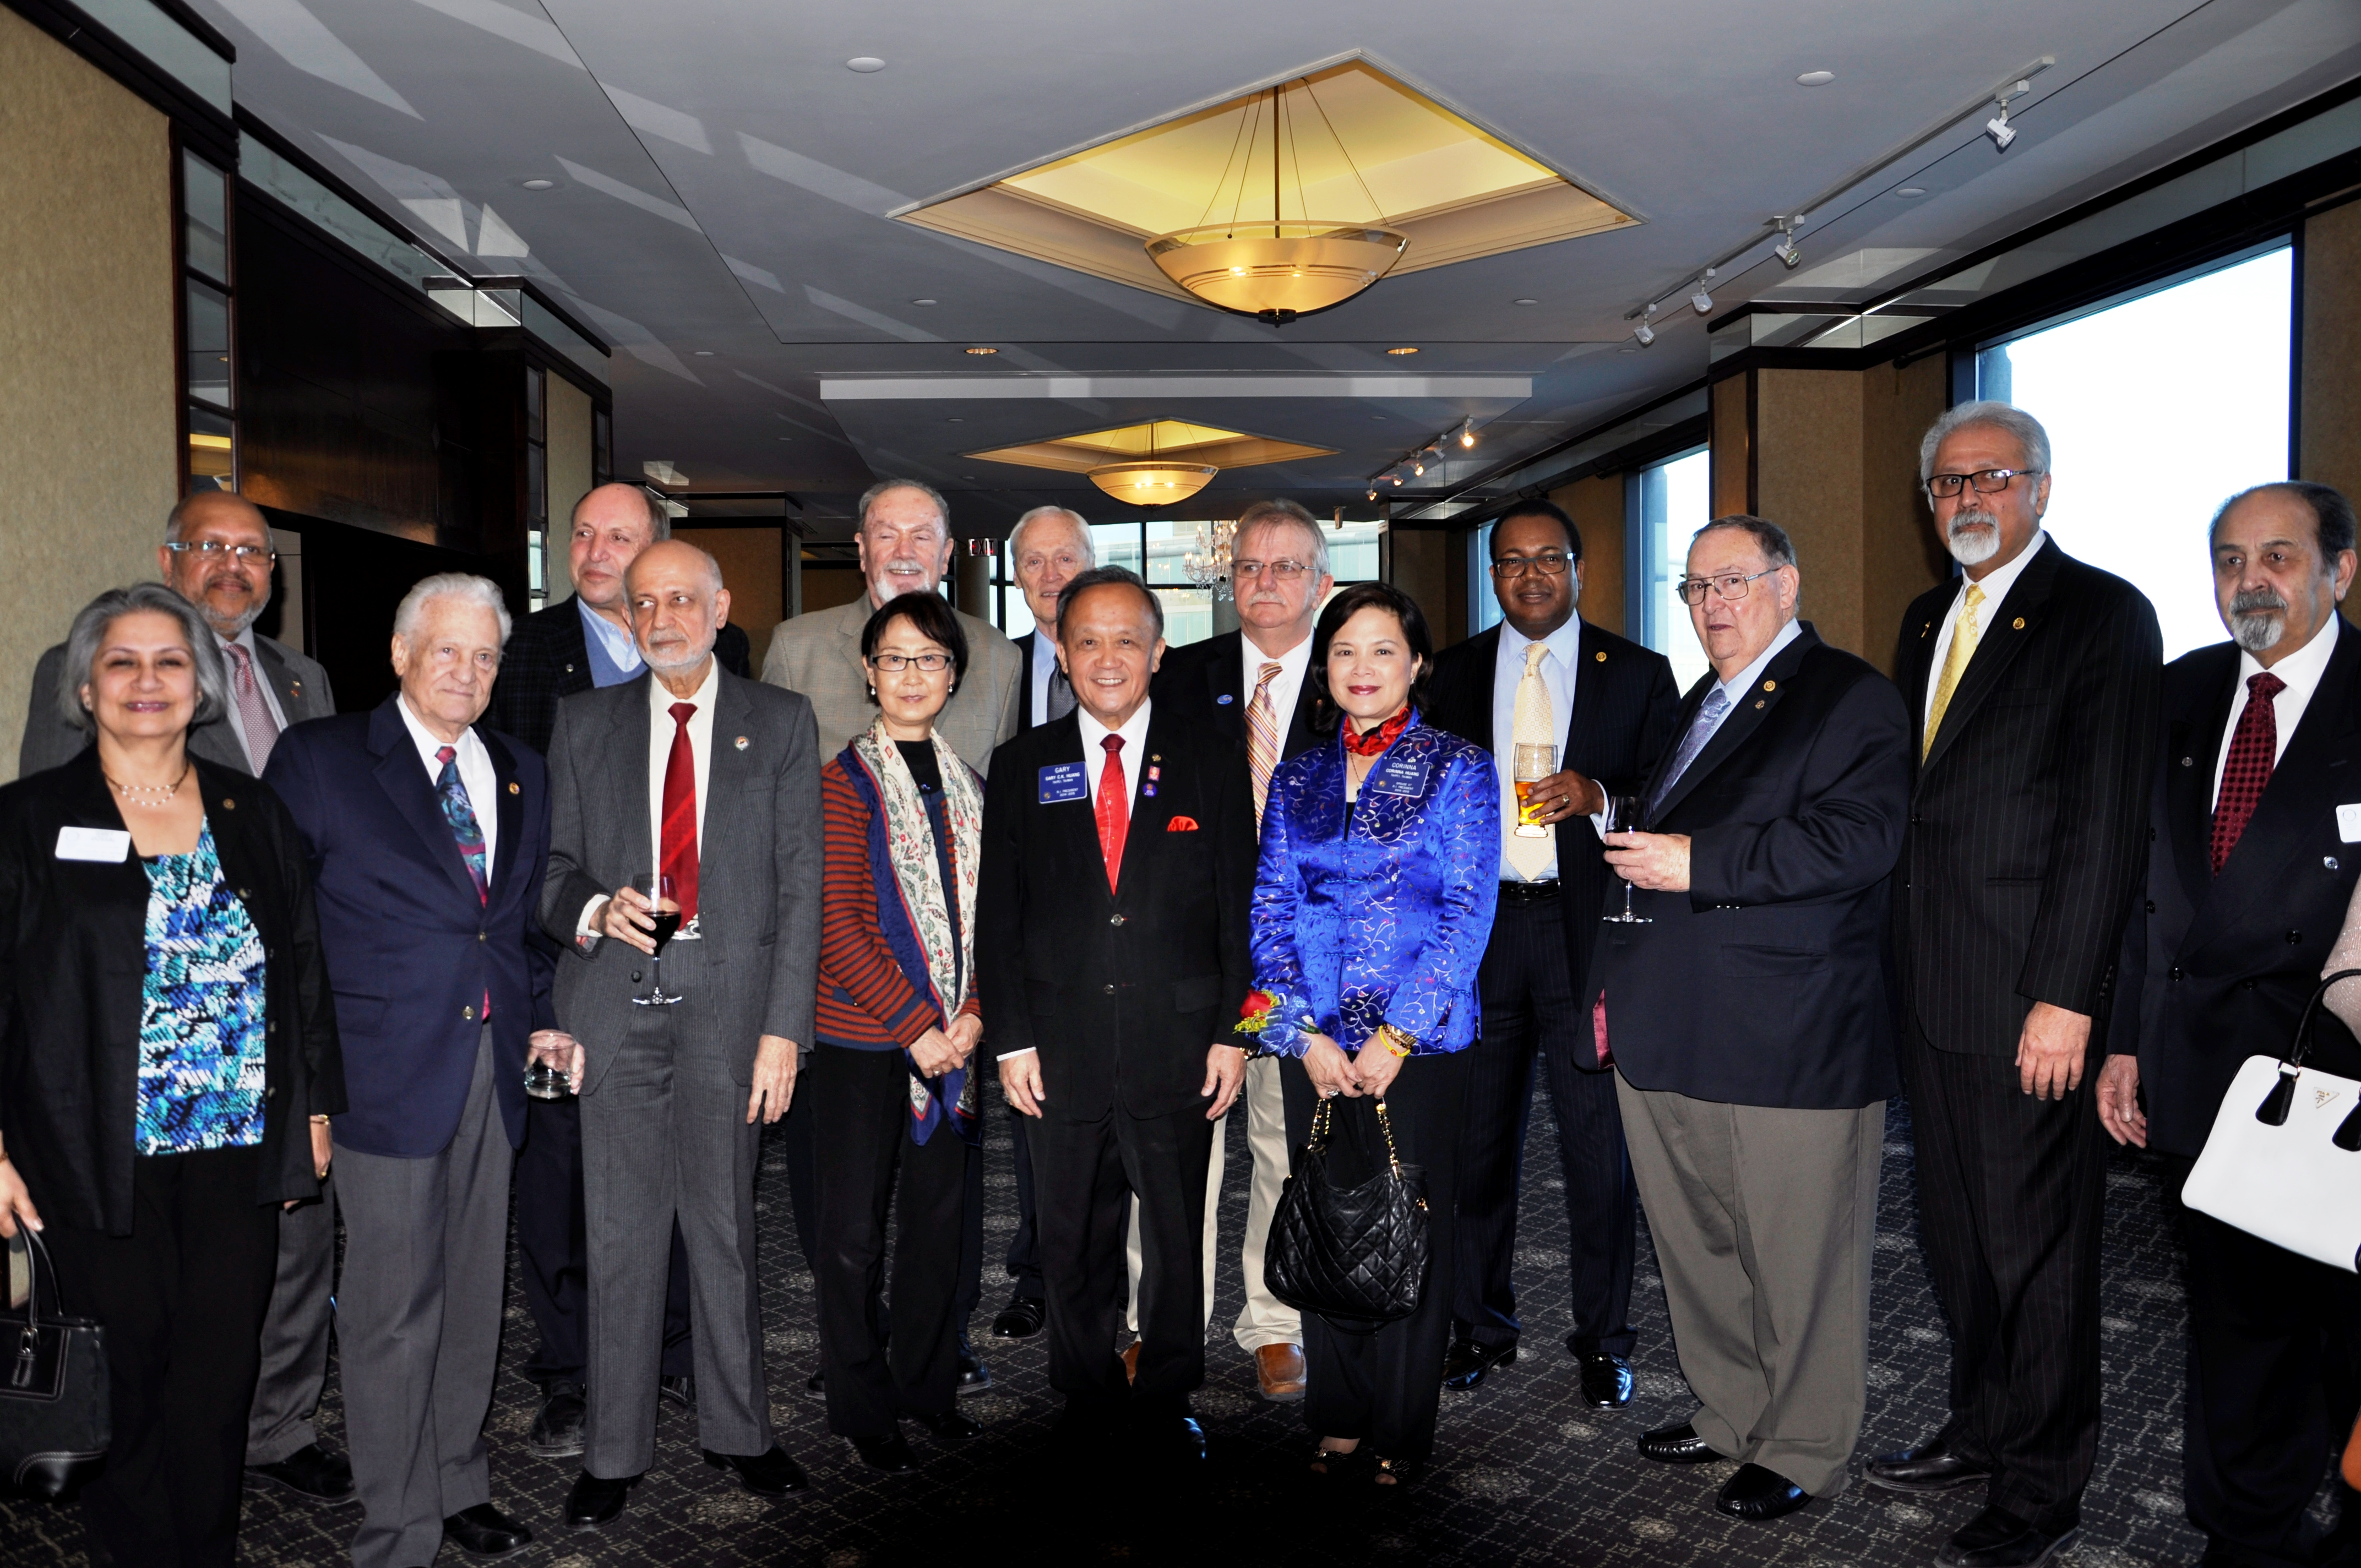 Rotary International President Gary Huang with some of the members of the Richmond Hill Rotary Club